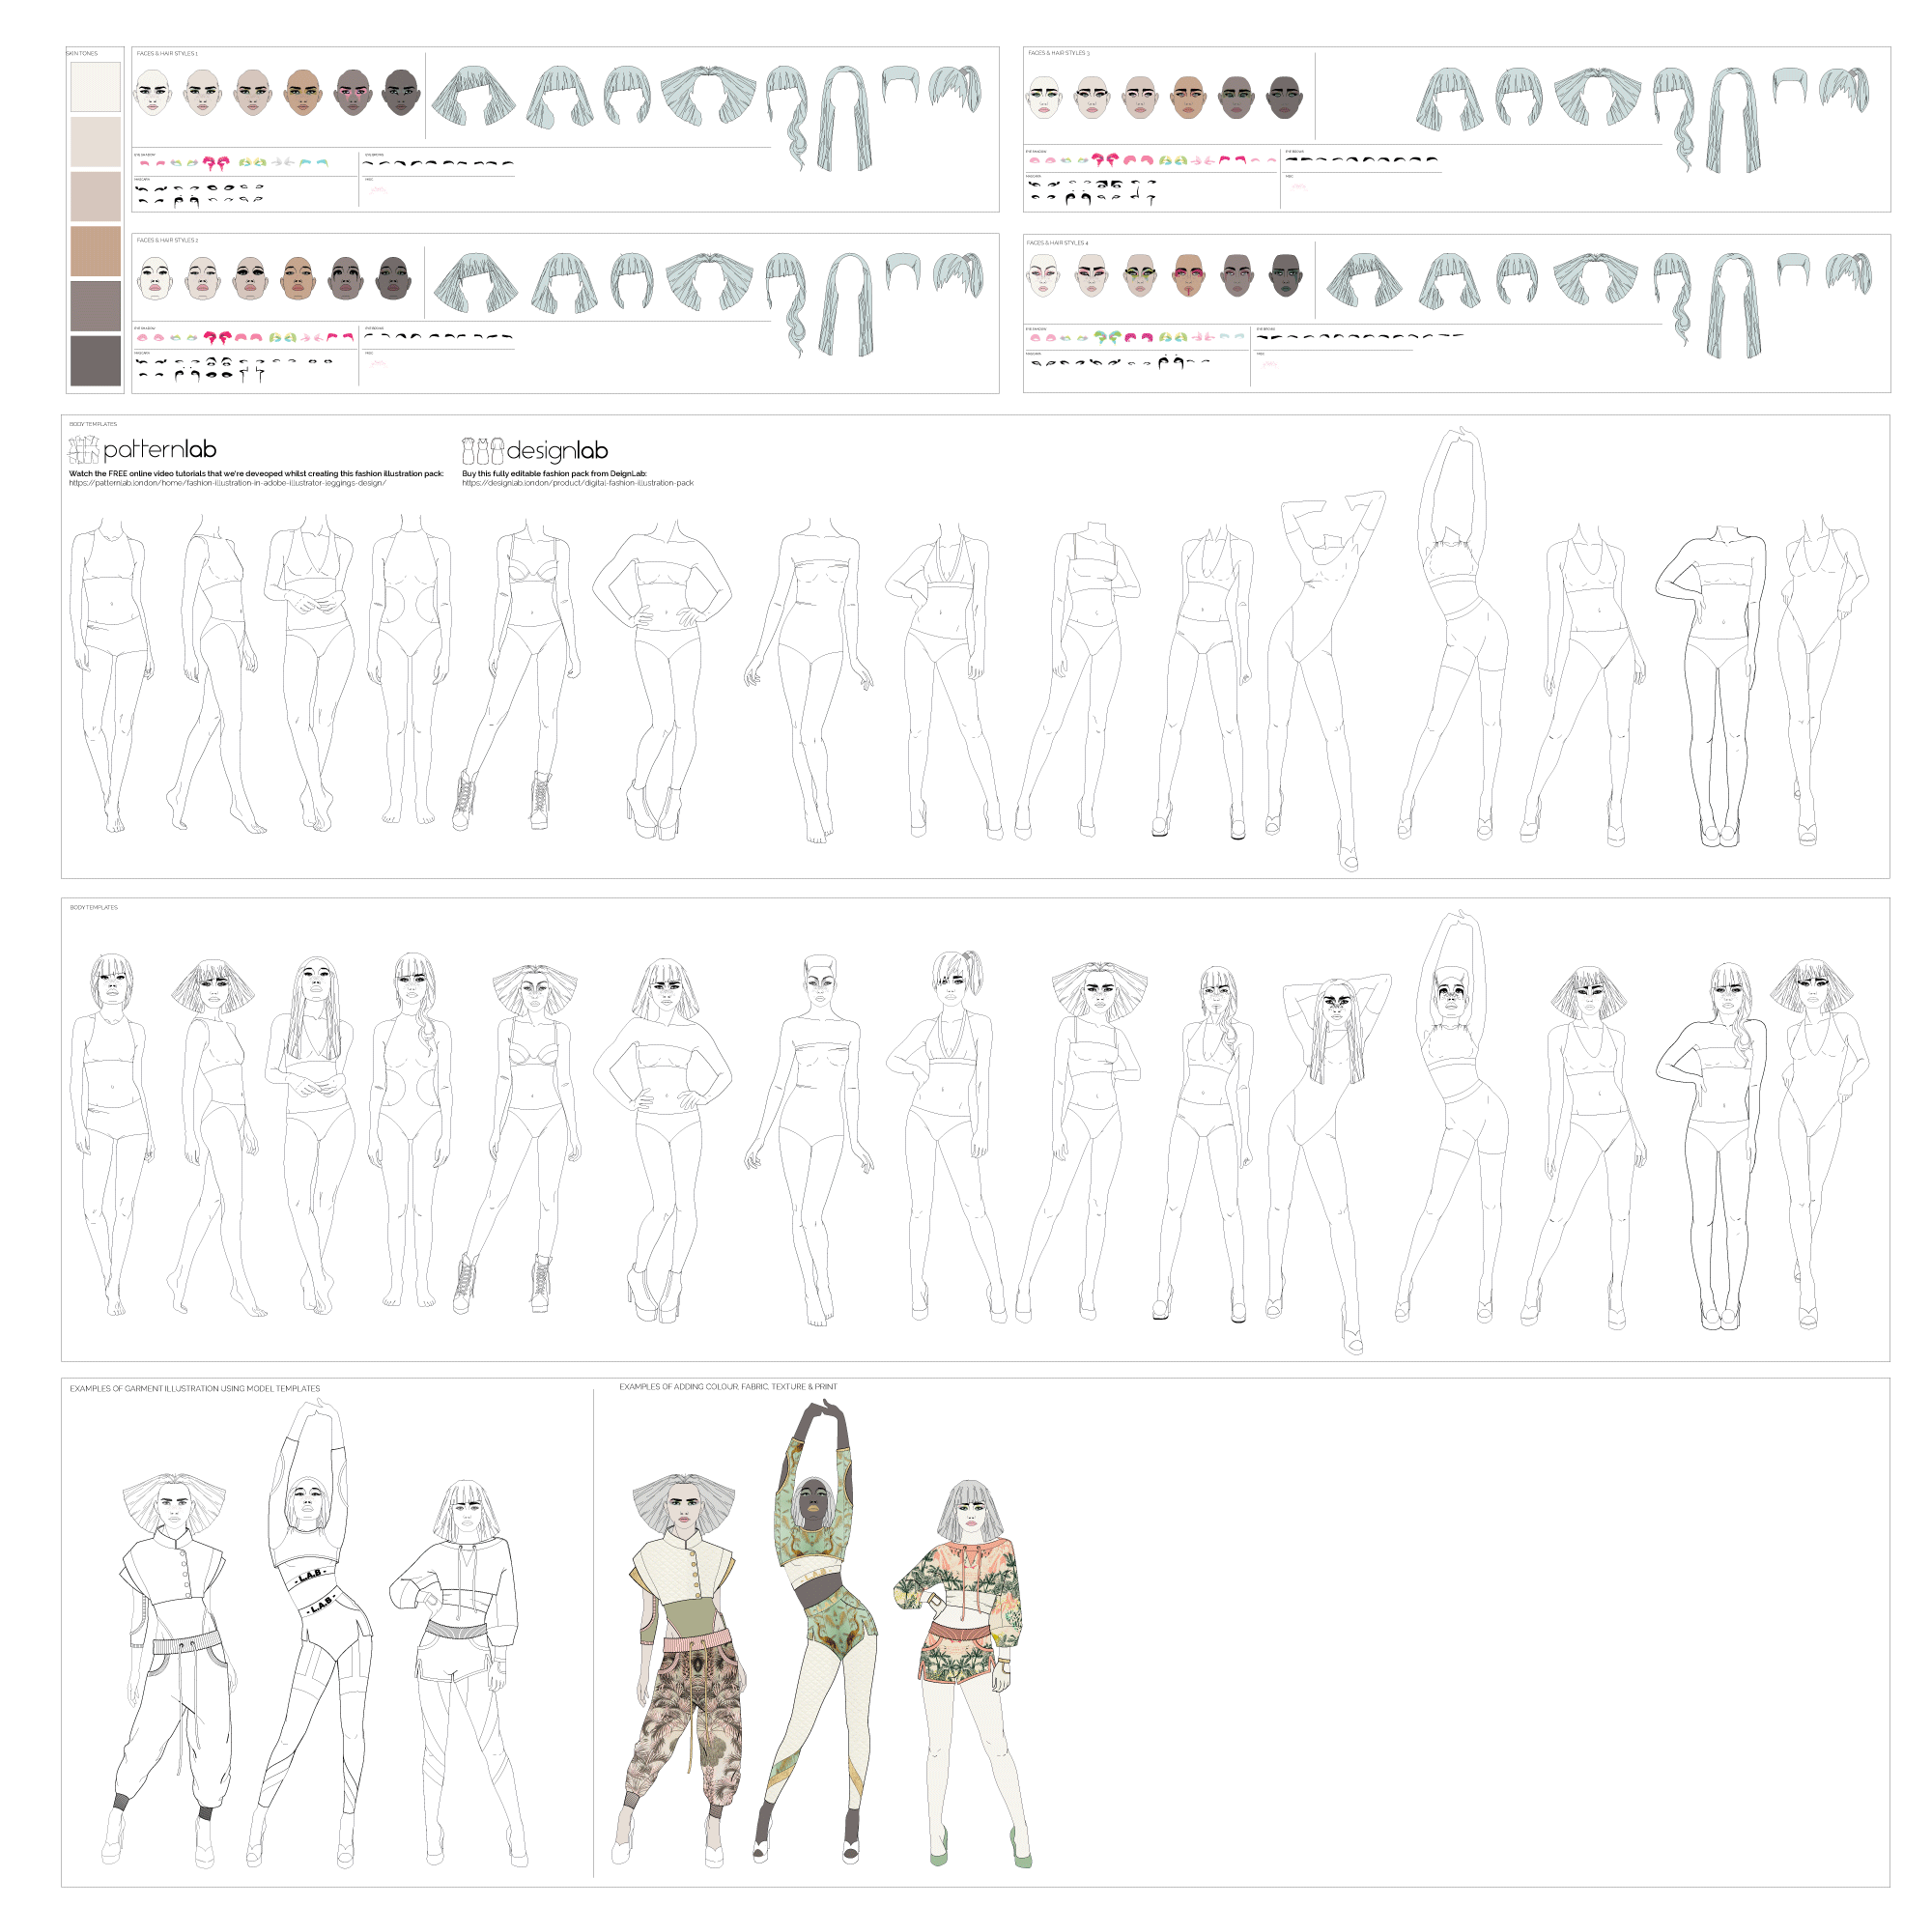 digital fashion illustration pack model templates PatternLab